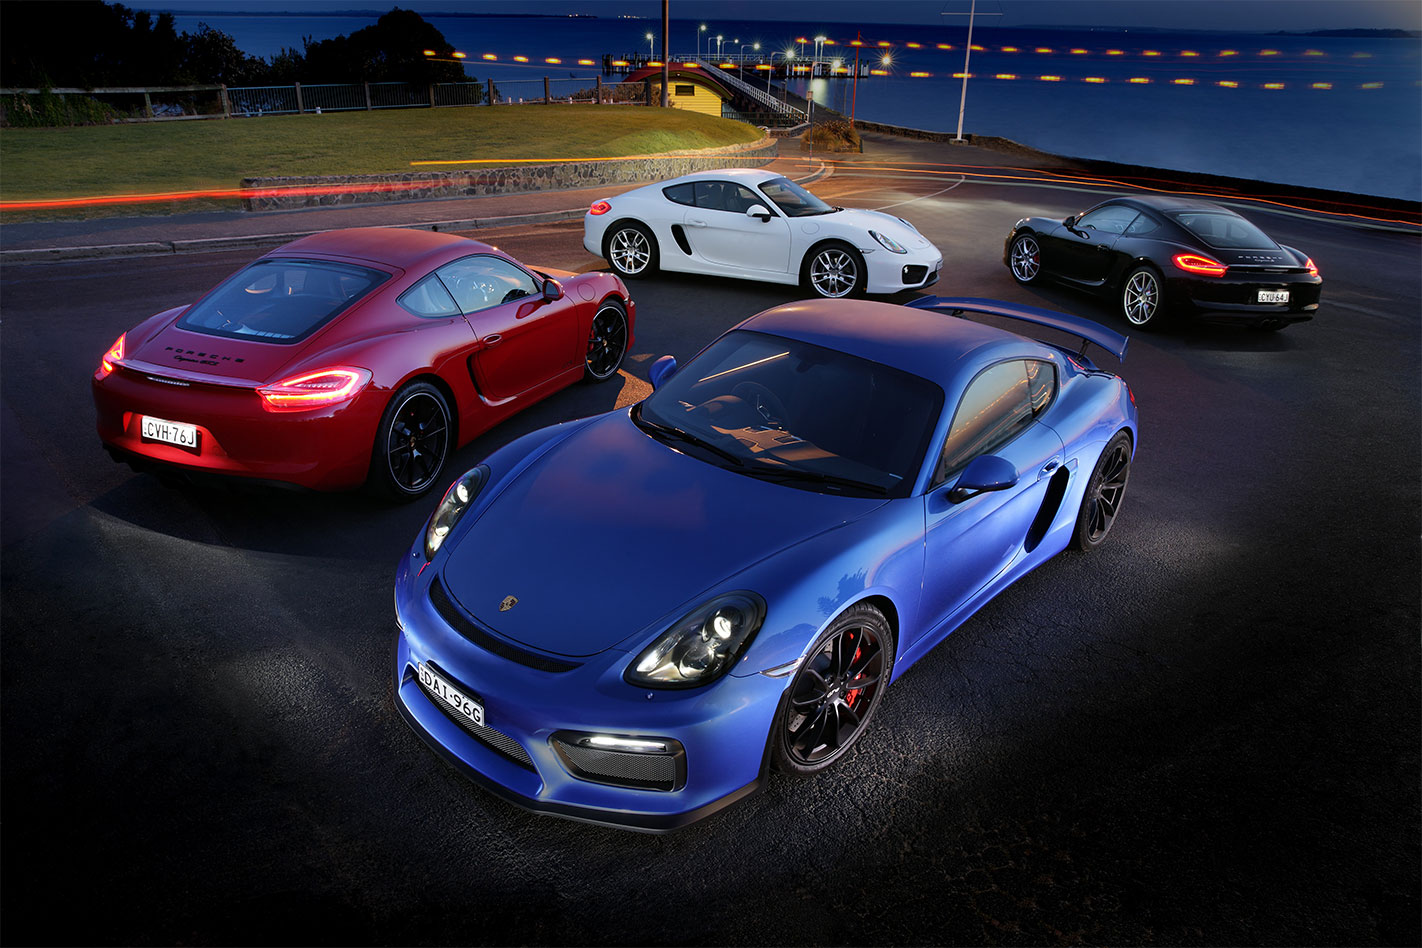 Porsche -Cayman -GT4-group -shot